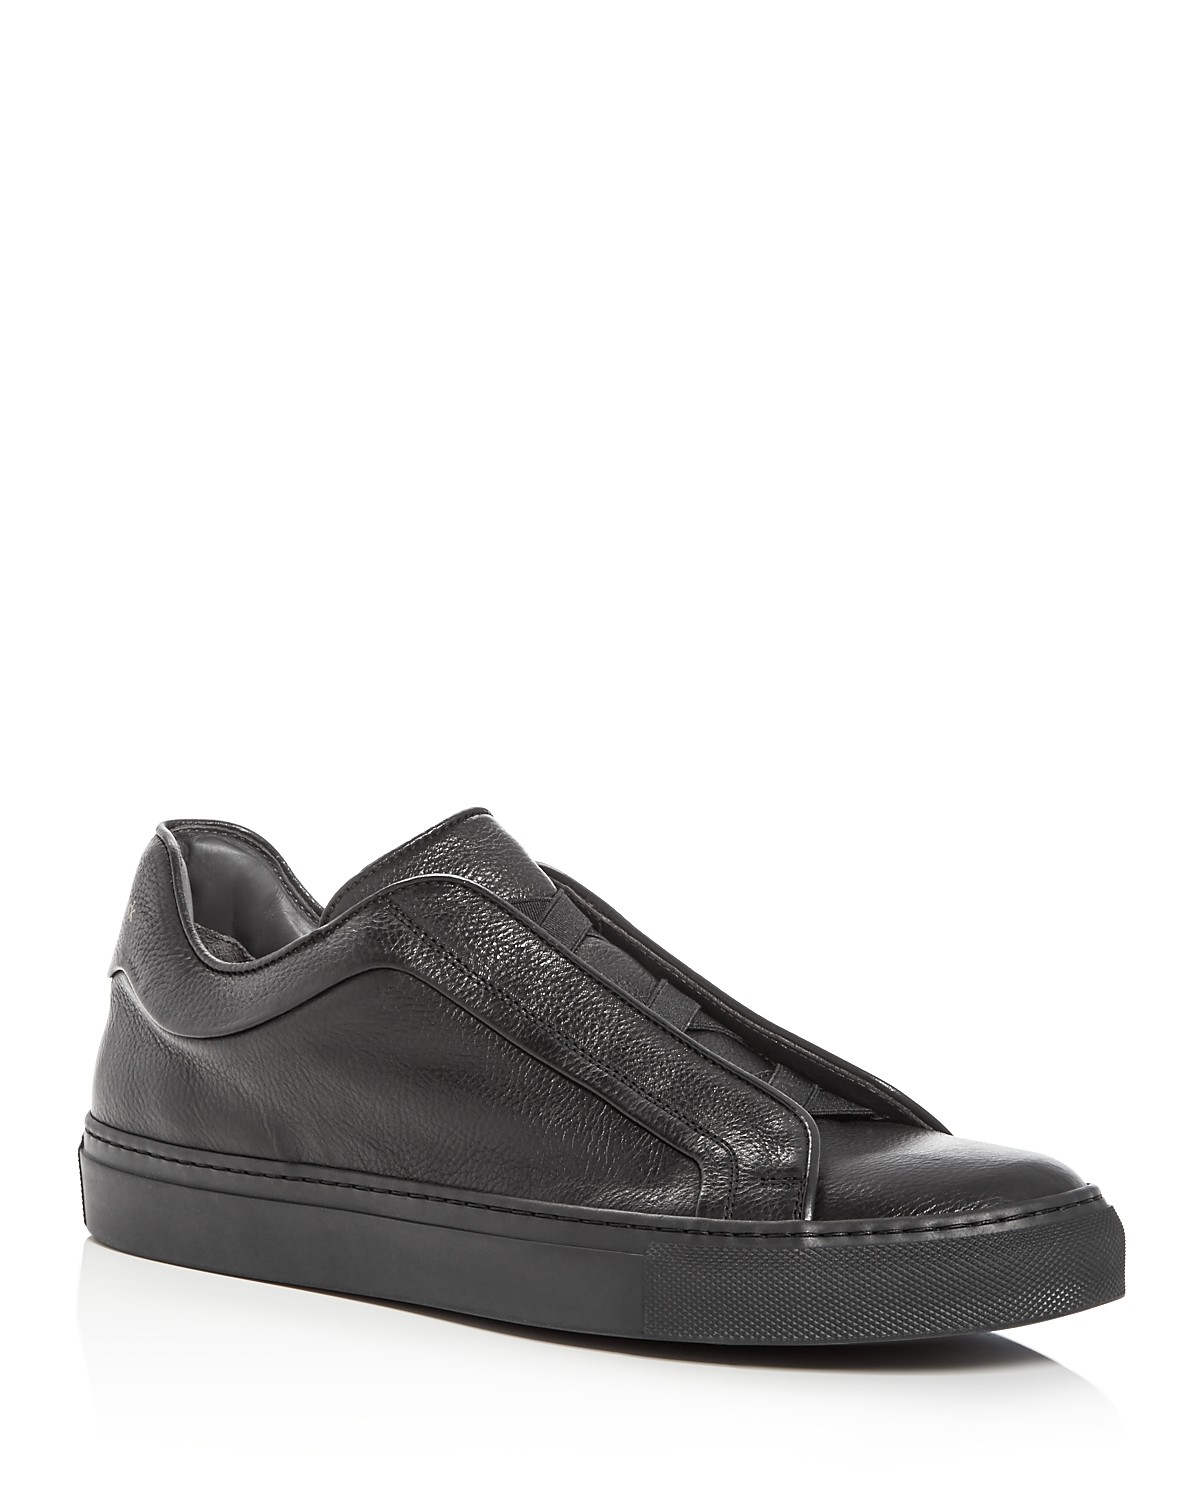 To Boot Men's Cliff Leather Slip-On Sneakers CibYOEVcWq